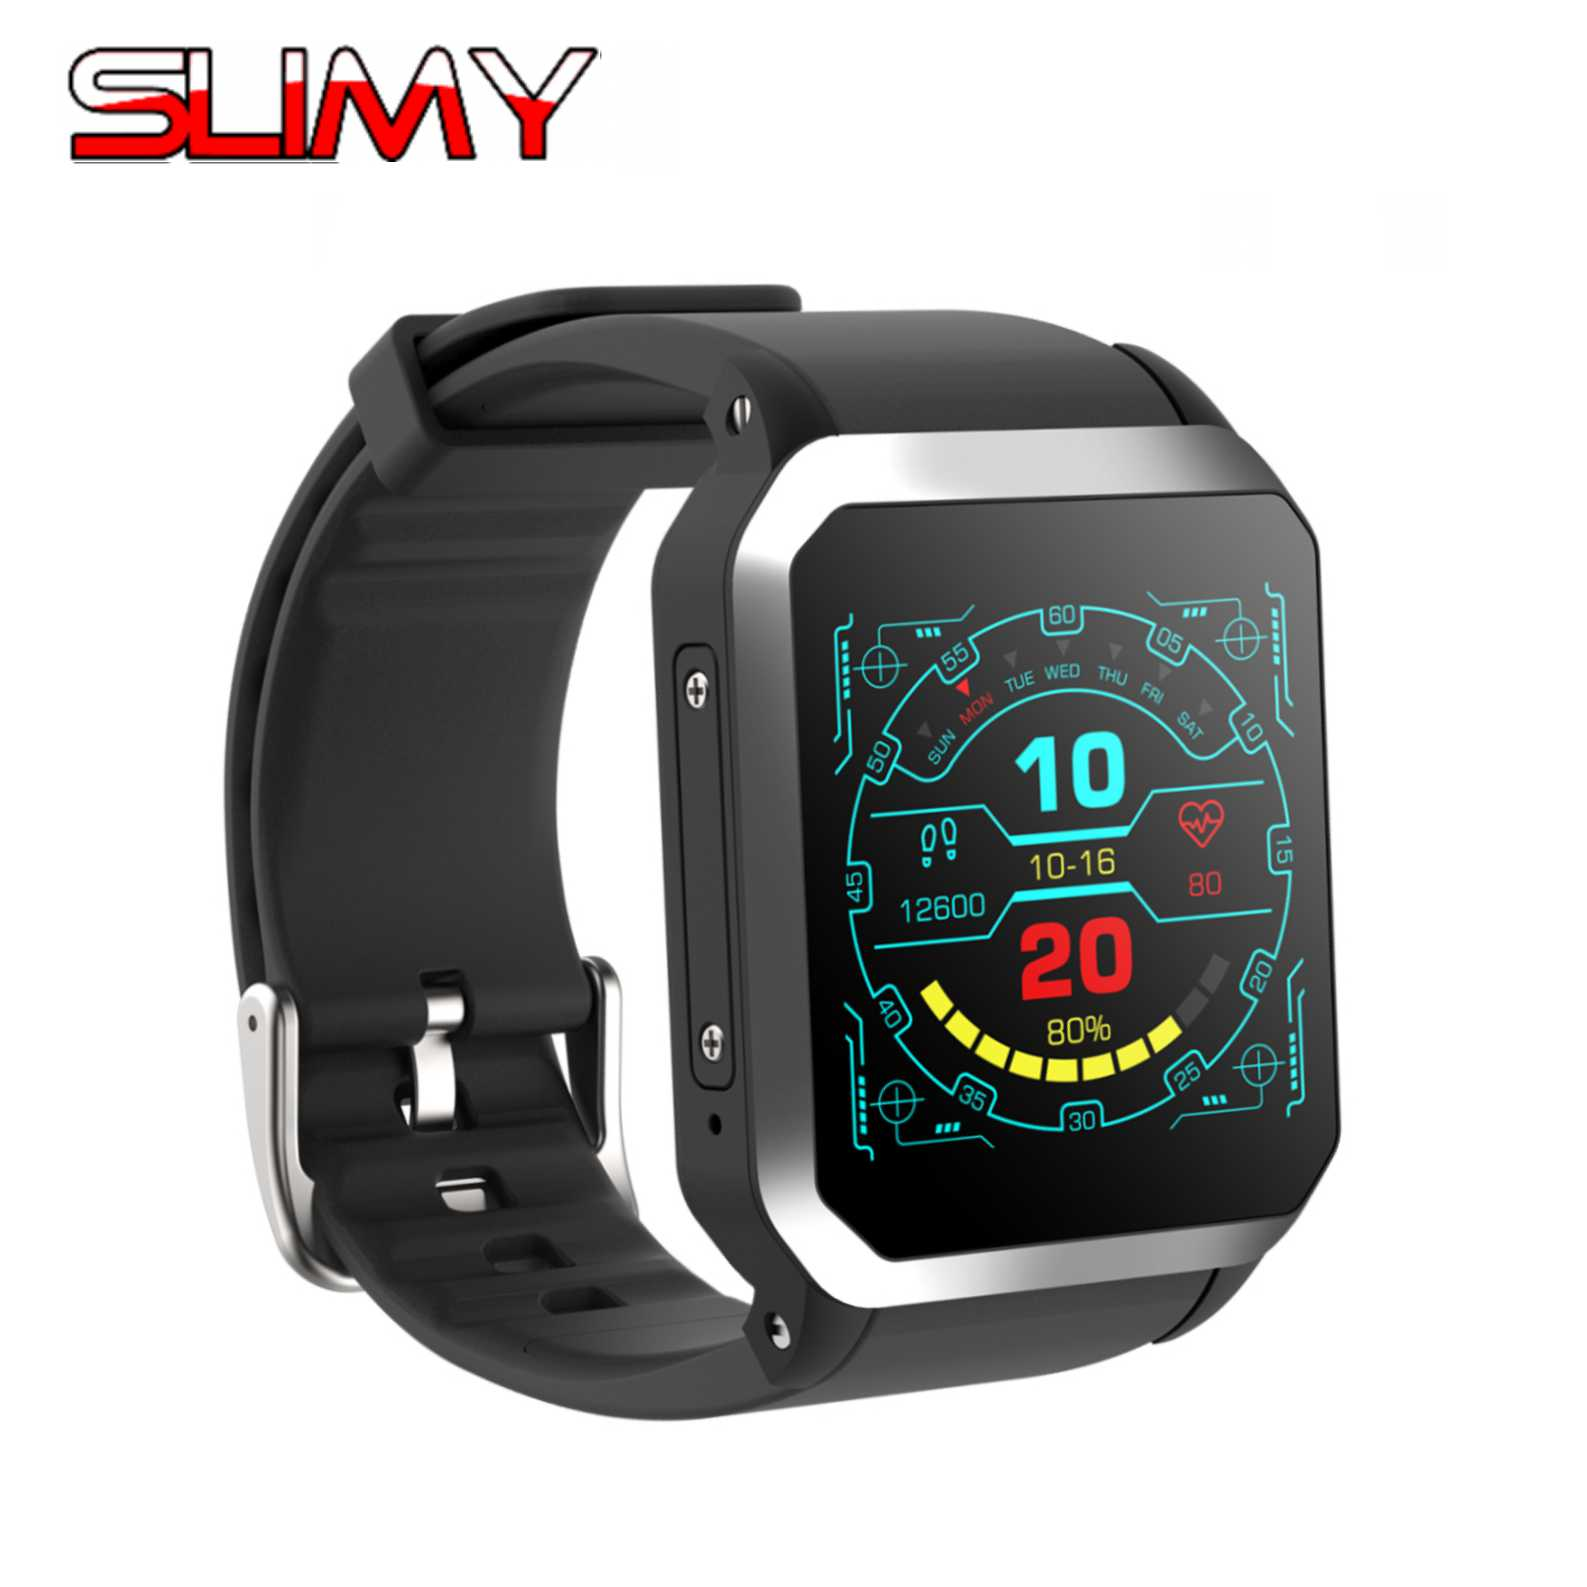 Slimy 3G Wifi Smart Watch Android 5.1 8G Wrist Phone GPS SIM Card Heart Rate Monitor Smartwatch with IP68 Waterproof Camera 3g smart watch phone sim card bluetooth android 5 1 smartwatch heart rate monitor with camera wifi wcdmn gps tracker pk d5 x3